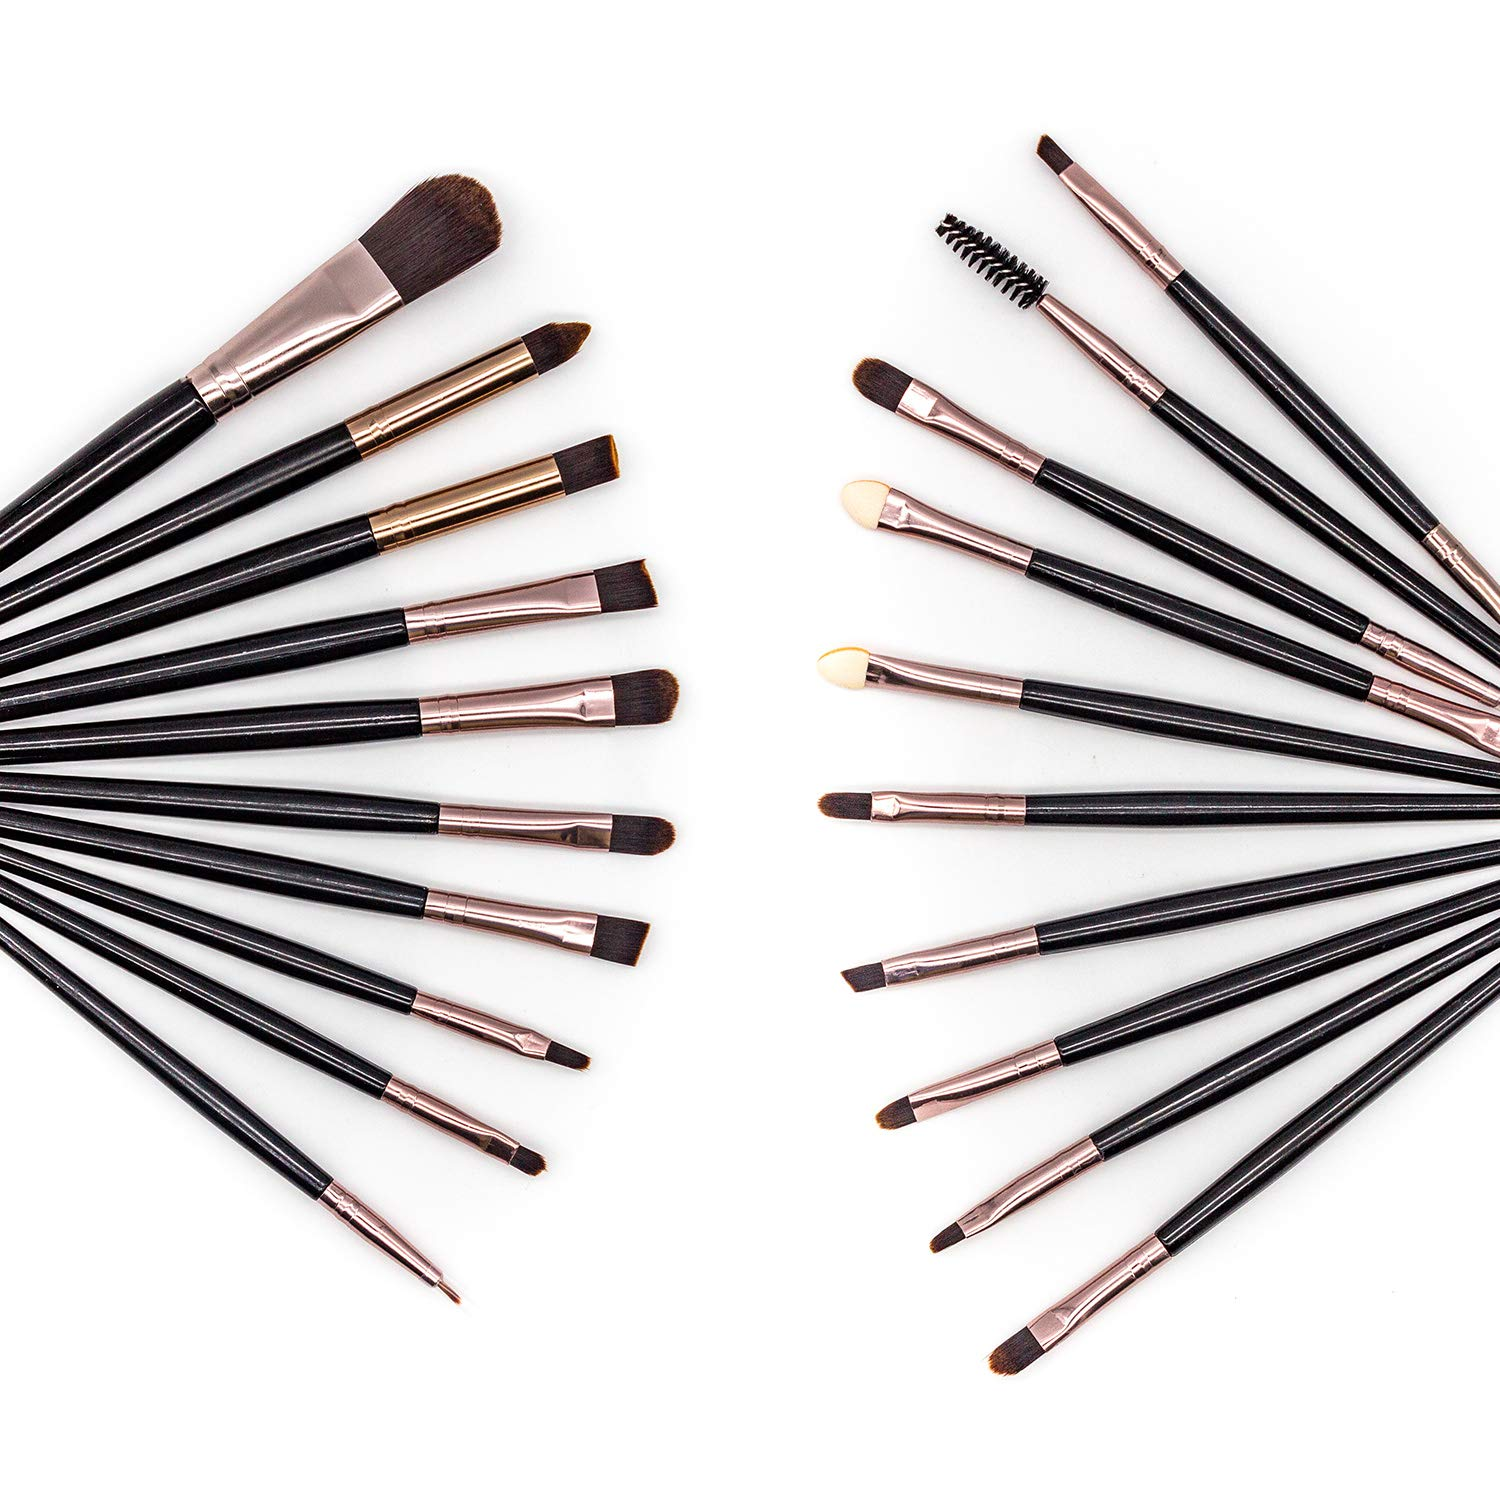 VARWANEO 20 eye shadow brushes, multi-purpose foundation brush, eyeliner brush and eyebrow brush